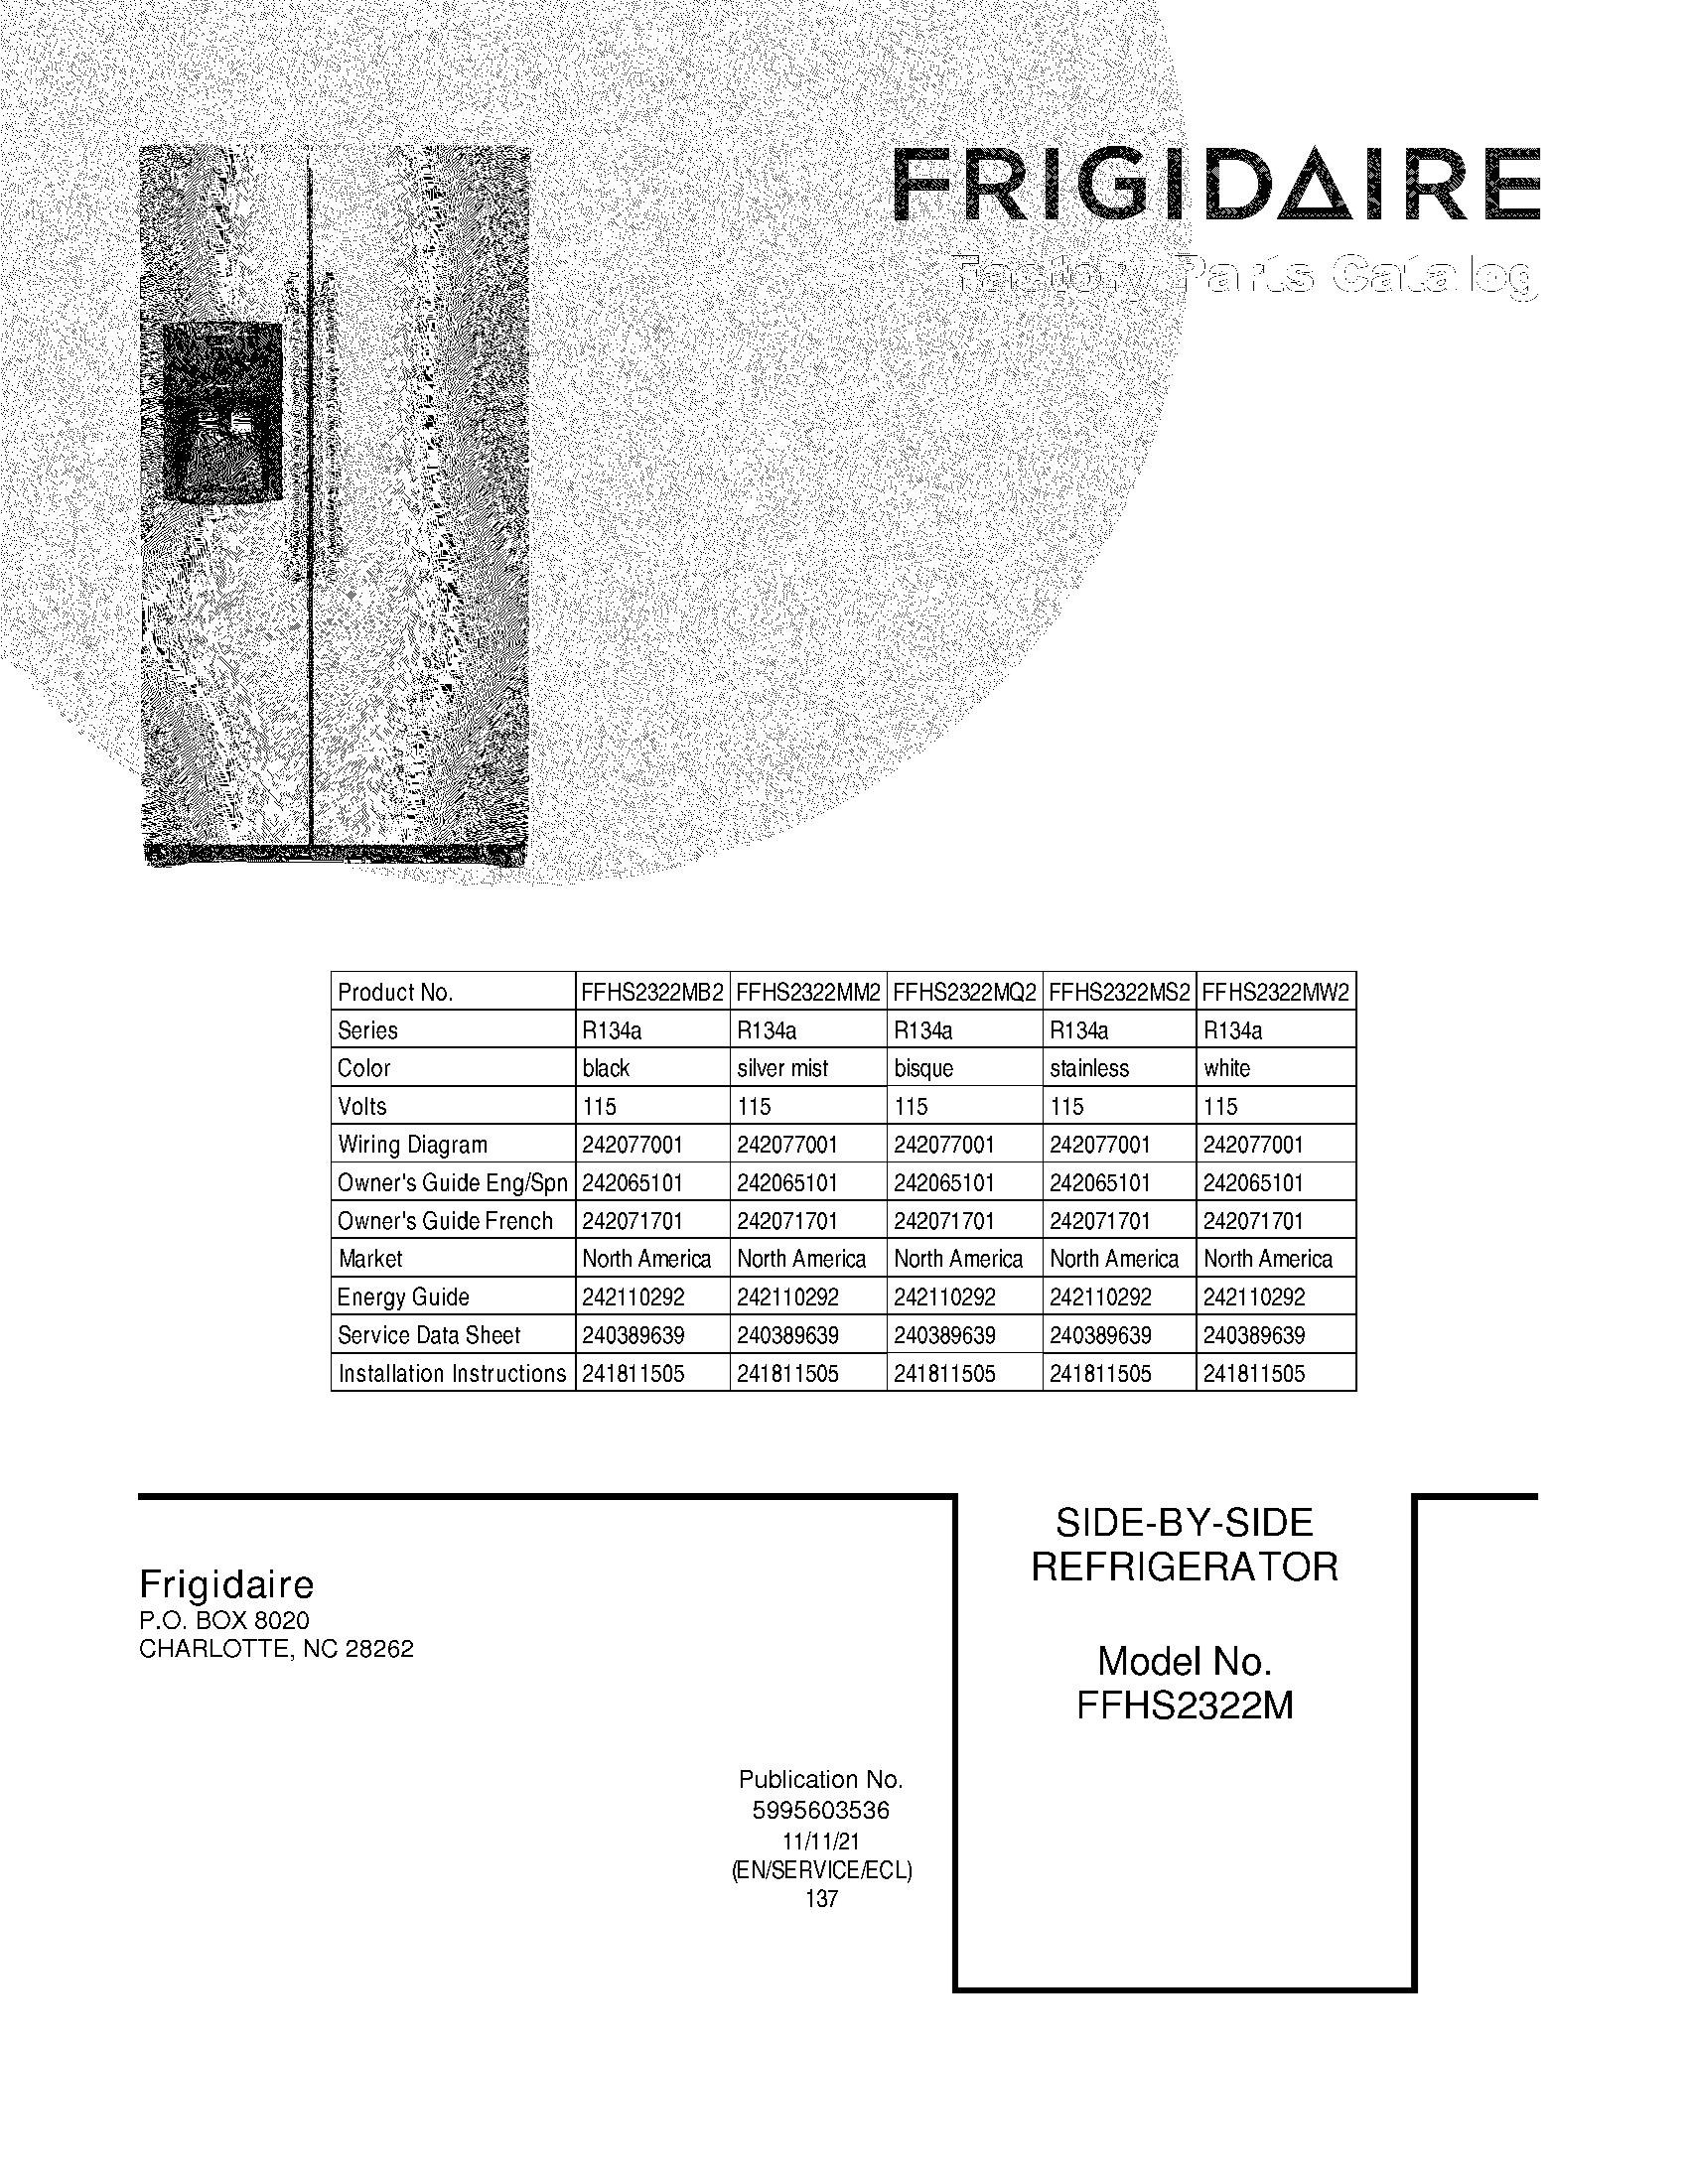 ElectroluxImg_19000101 20150717_00060111?width\=1000 frigidaire ice maker wiring diagram gandul 45 77 79 119  at edmiracle.co